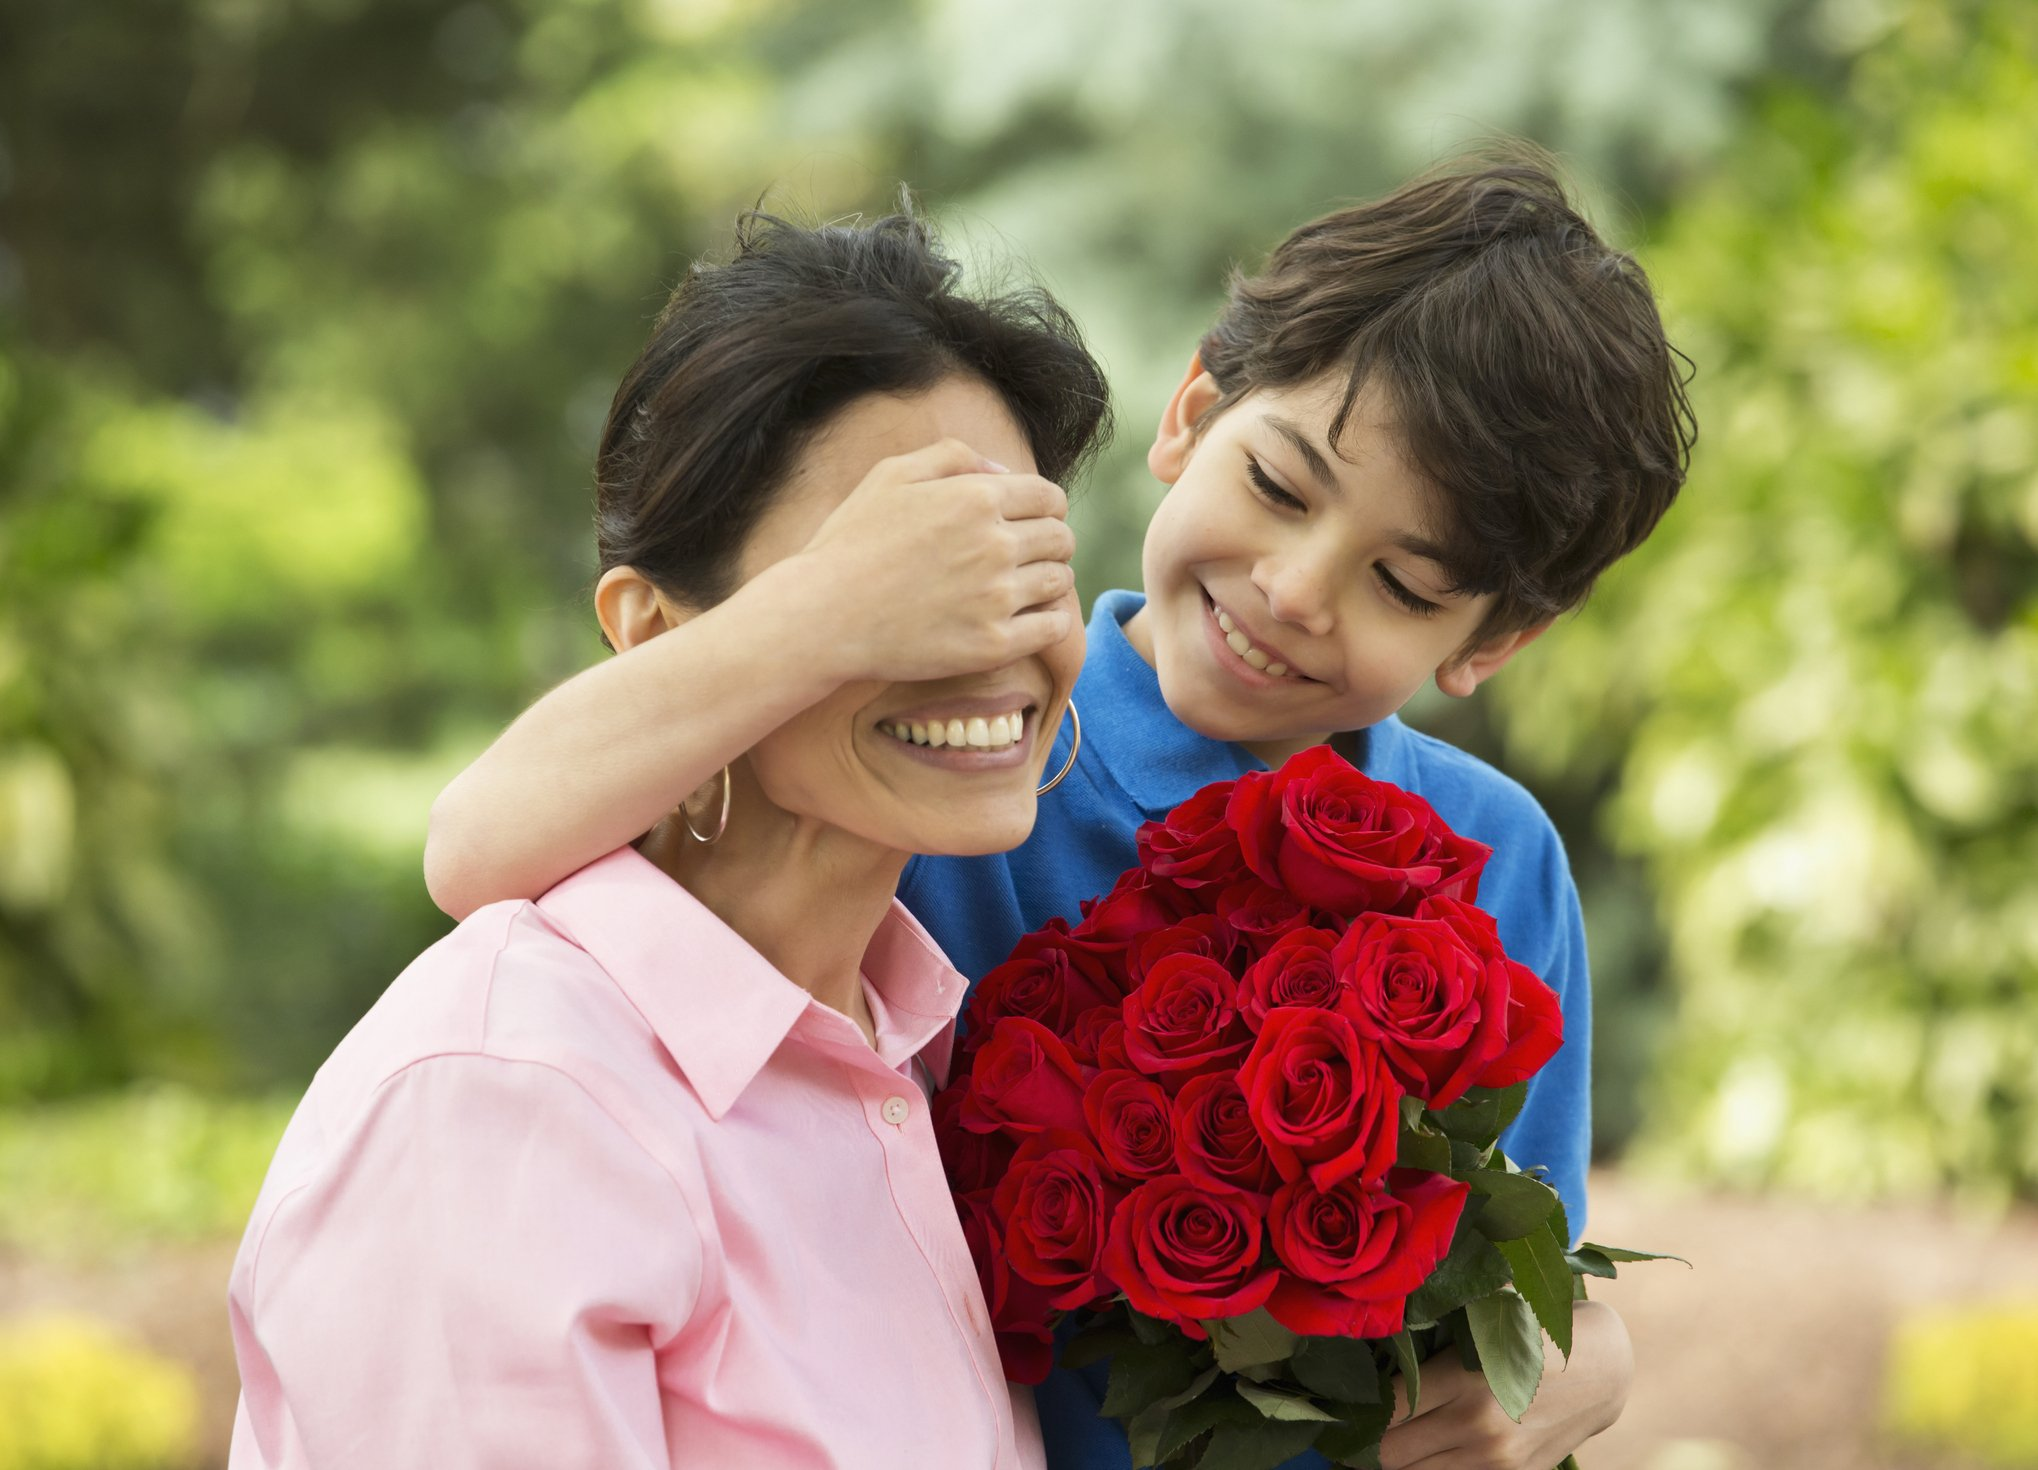 Hispanic boy giving mother bouquet of roses | Photo: Getty Images